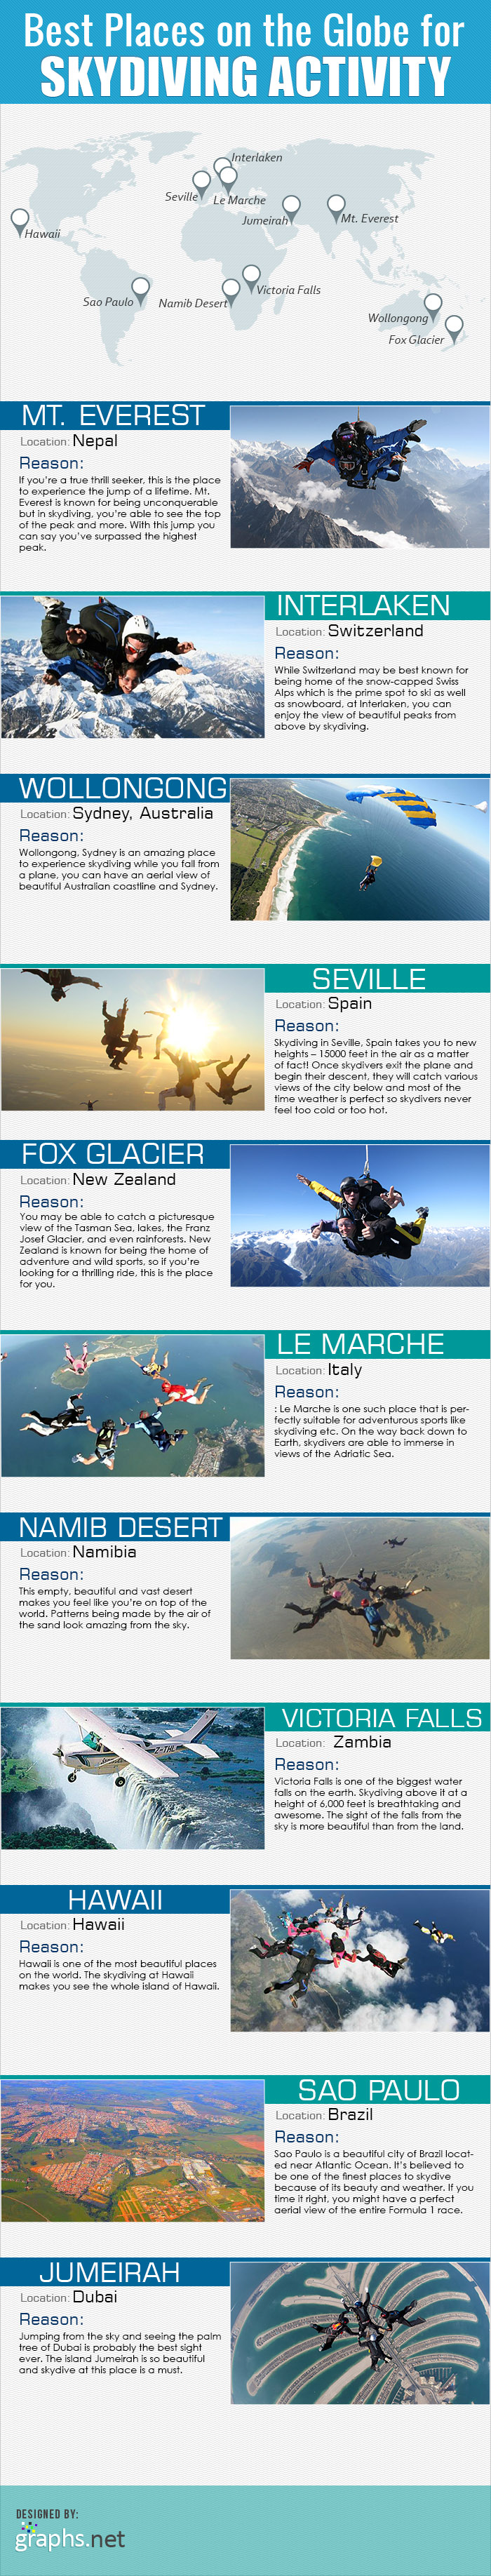 Best Places on the Globe for Skydiving Activity